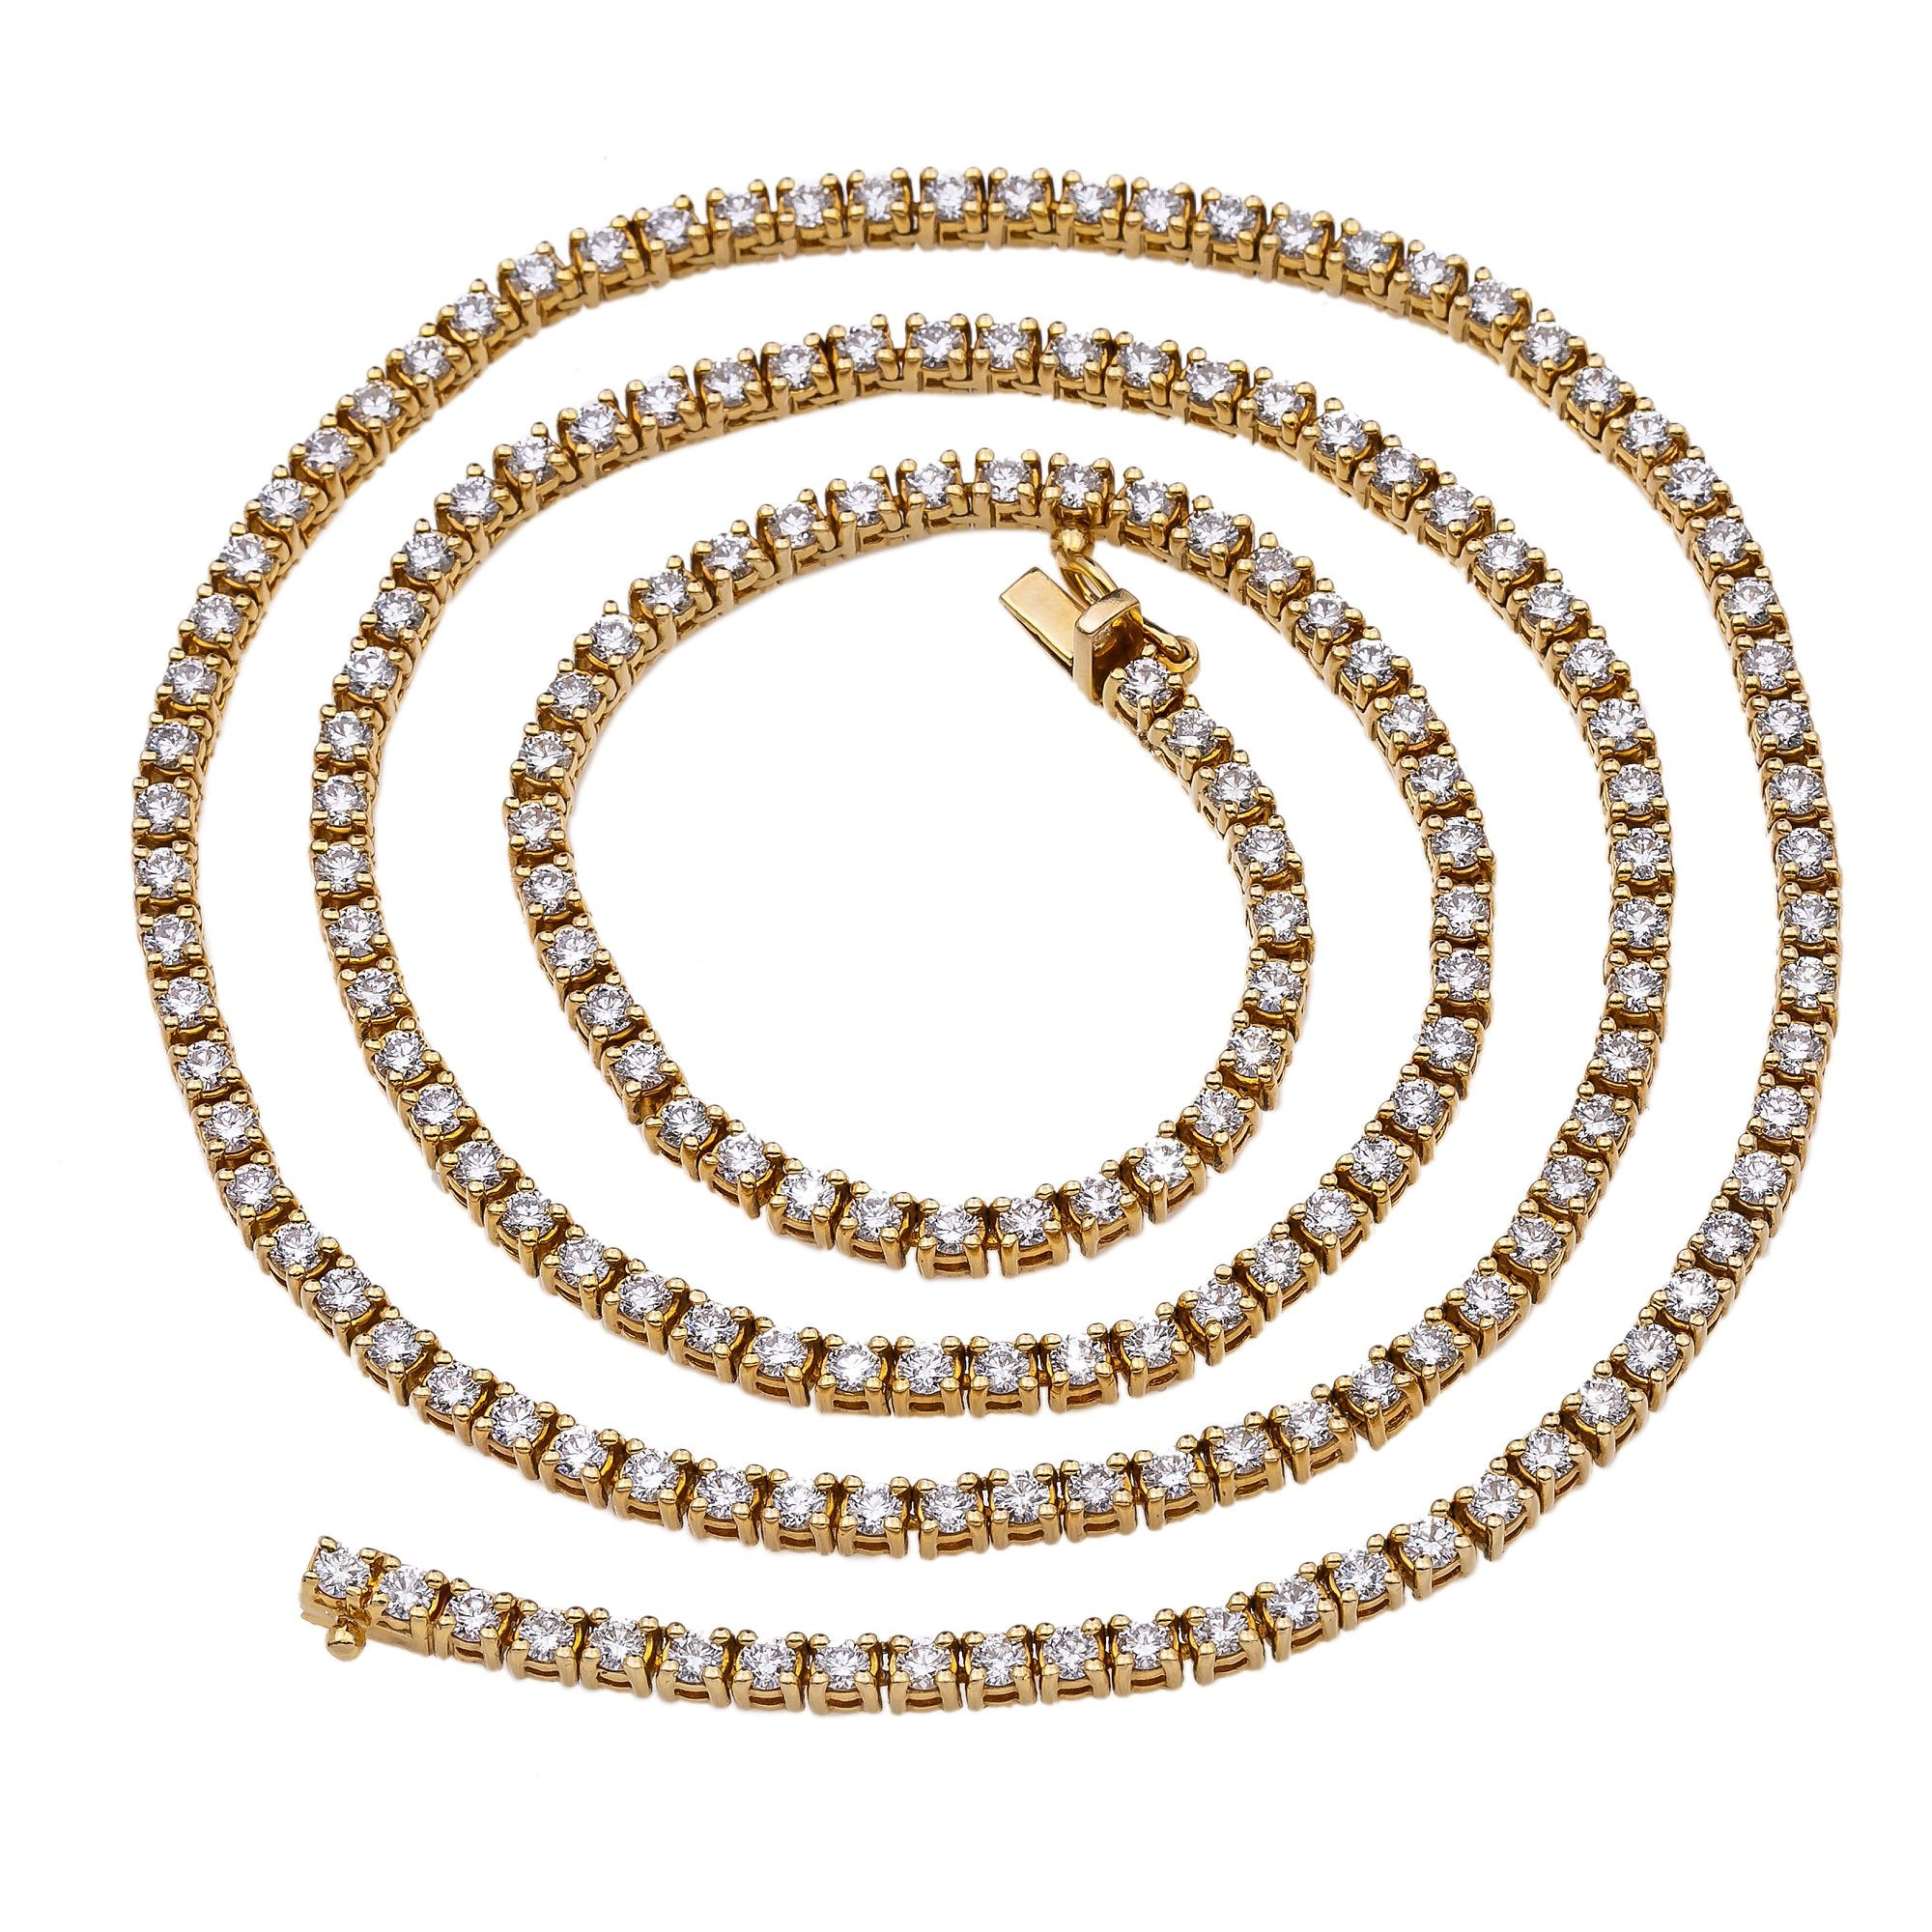 14K Yellow Gold Men's Tennis Chain With 15.75 CT Diamonds